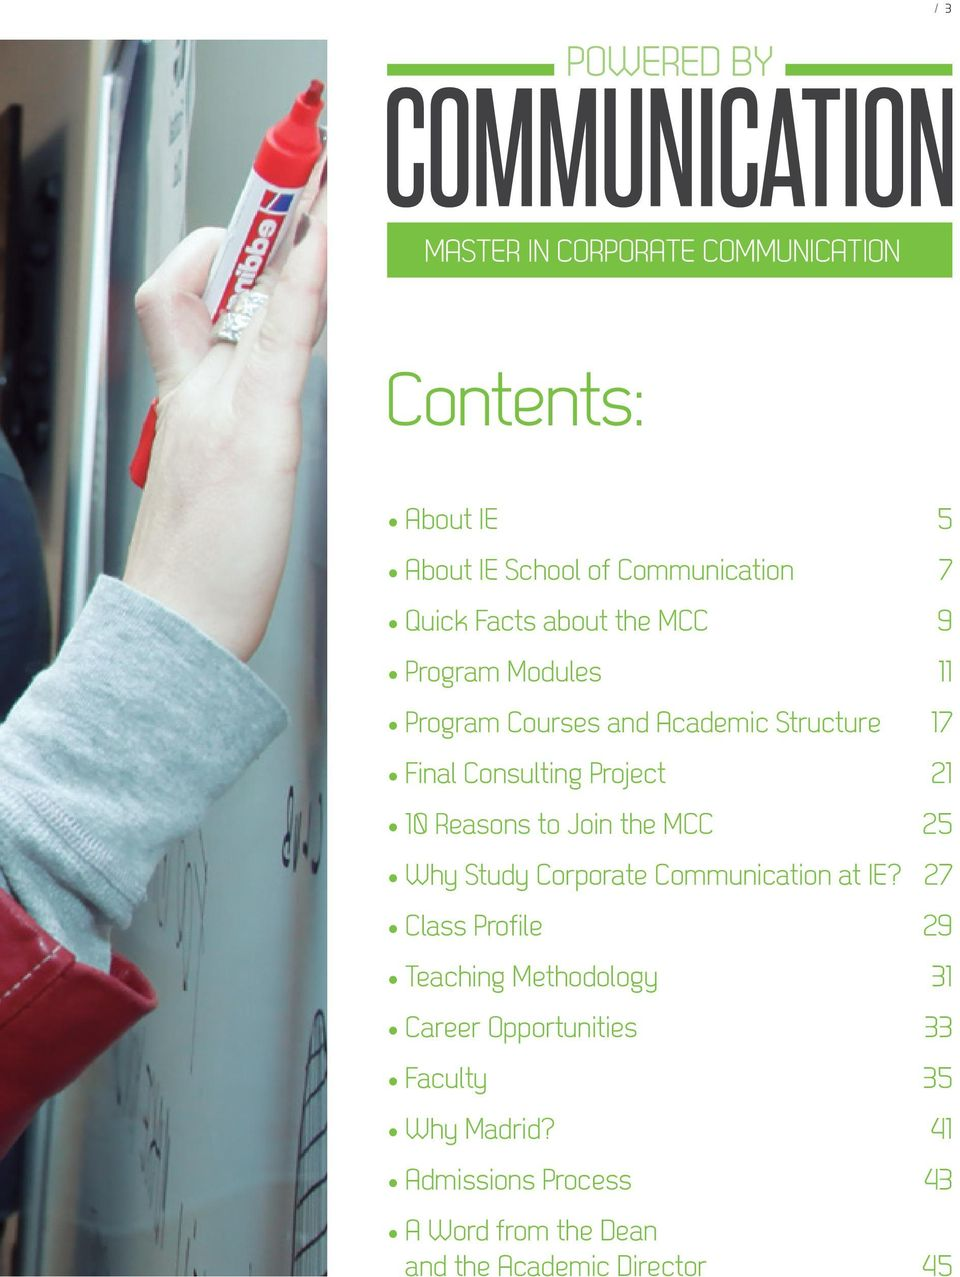 Reasons to Join the MCC 25 Why Study Corporate Communication at IE?